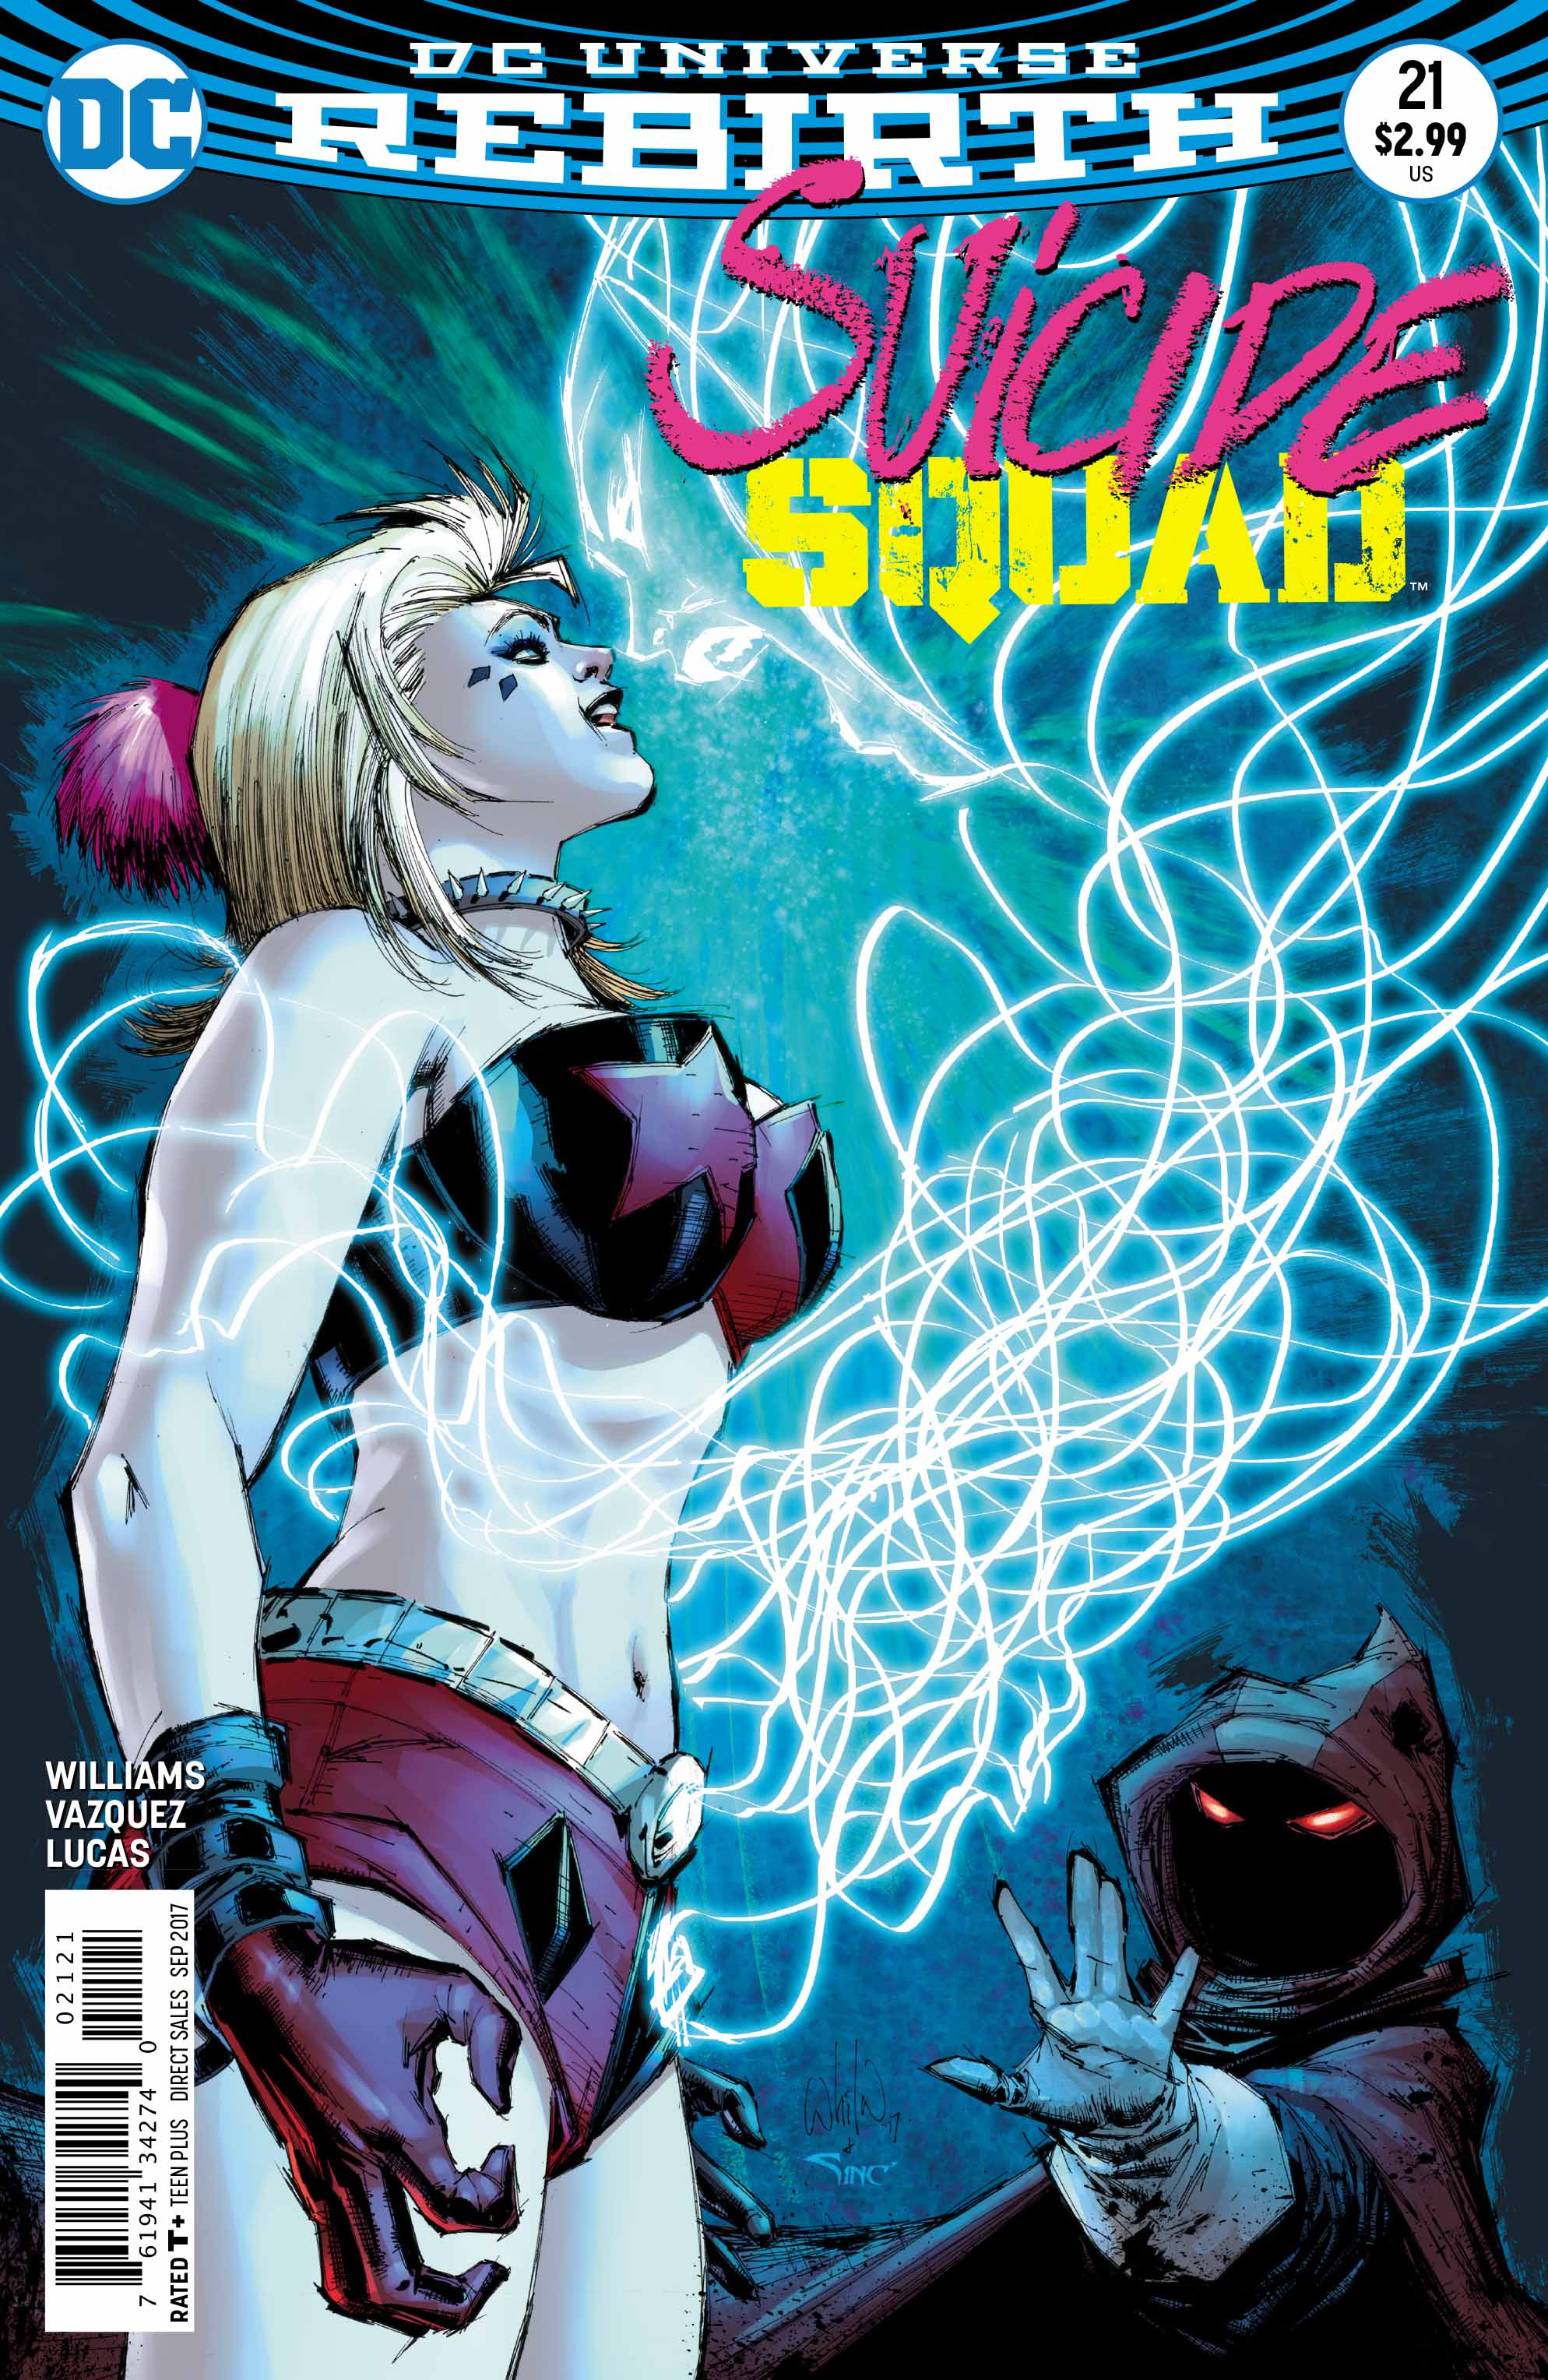 Exclusive Preview: Harley Quinn Takes Control In Suicide Squad #21